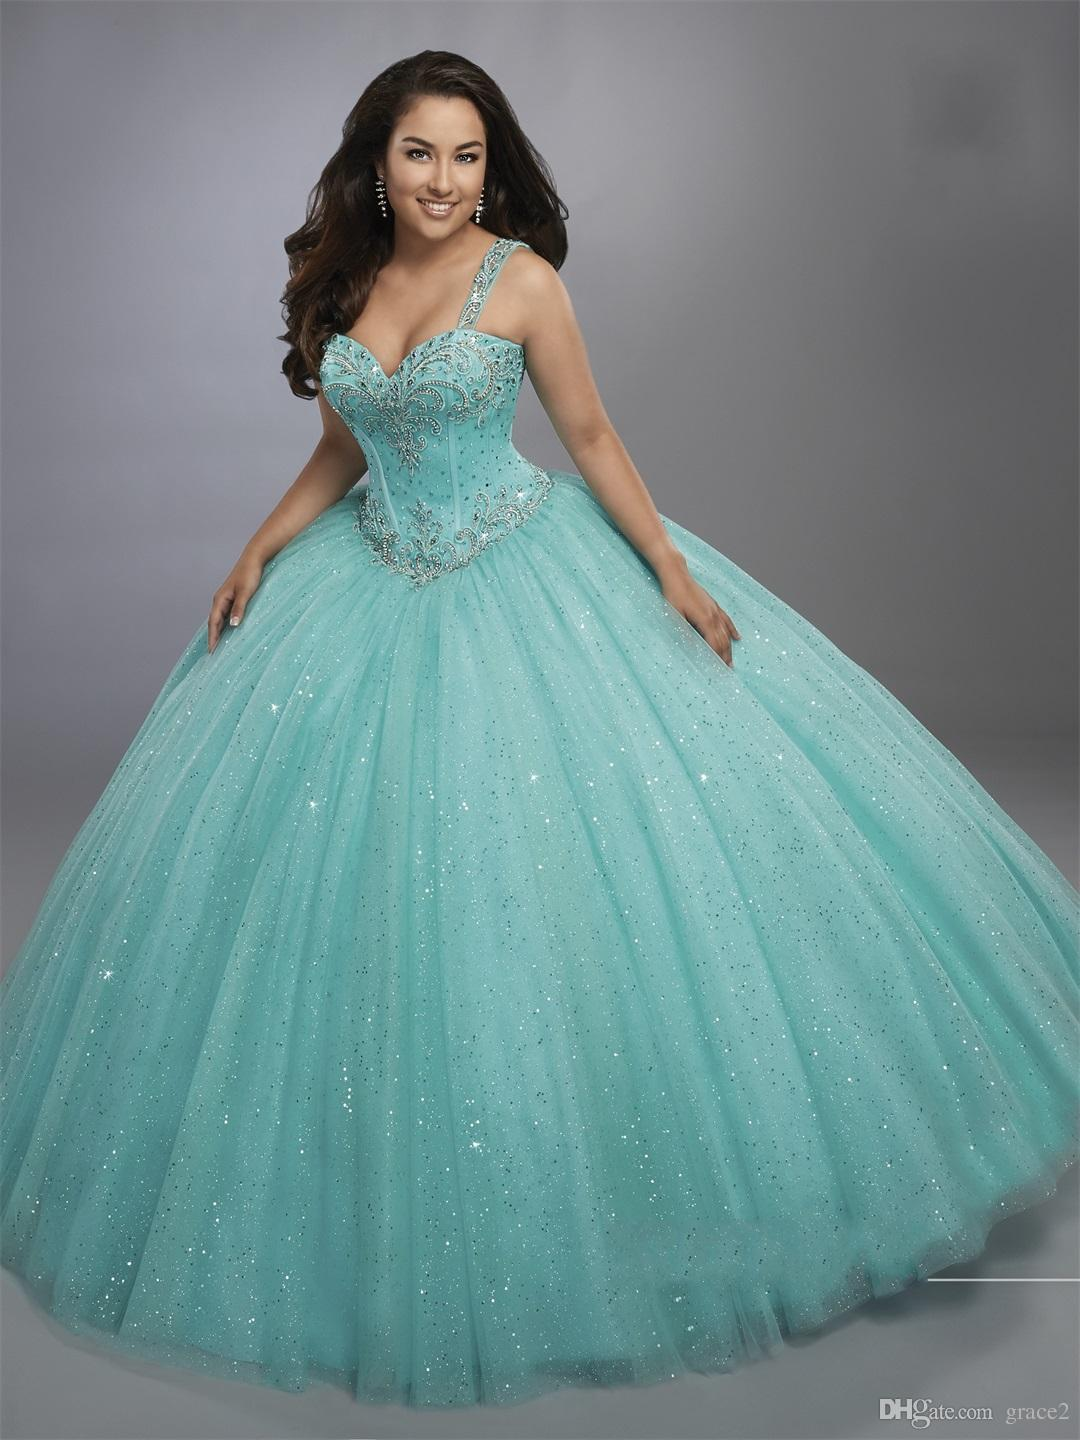 Aqua Sage Ball Gown Quinceanera Dresses with Bolero Basque Waistline Bling Bling Sweet 16 Puffy Dress Exposed Boning Sparkling